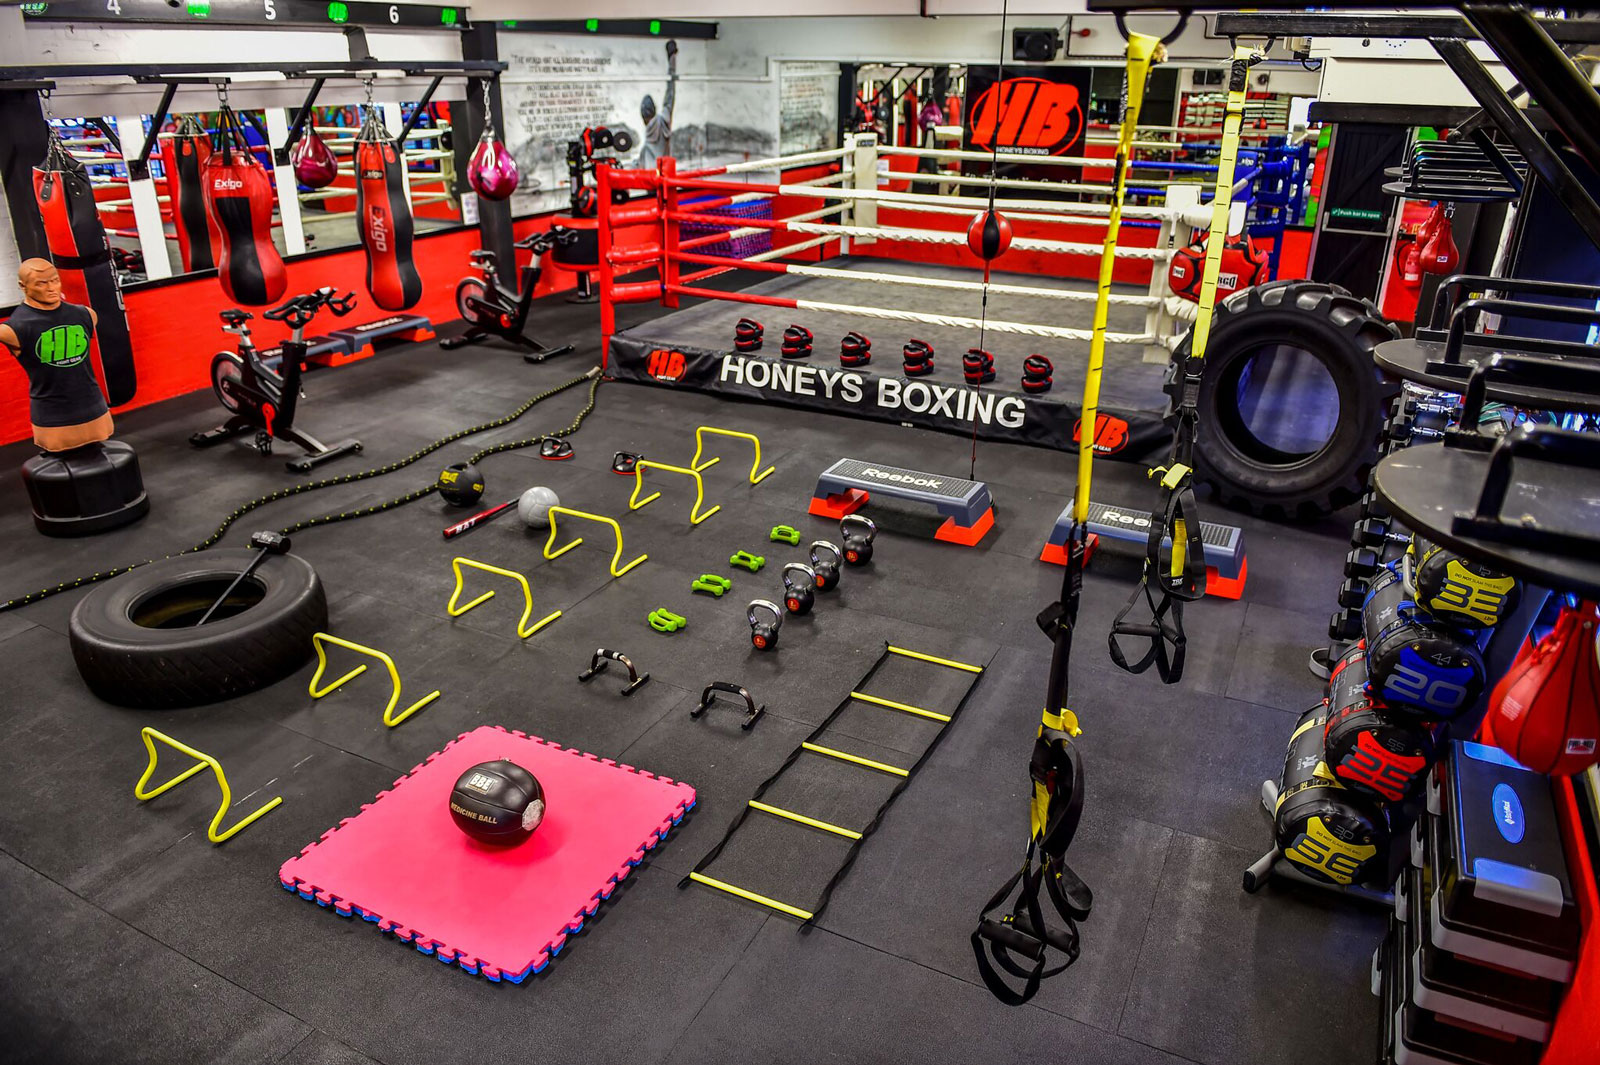 Boxing Gym Based in Rayleigh Essex, Honeys Boxing